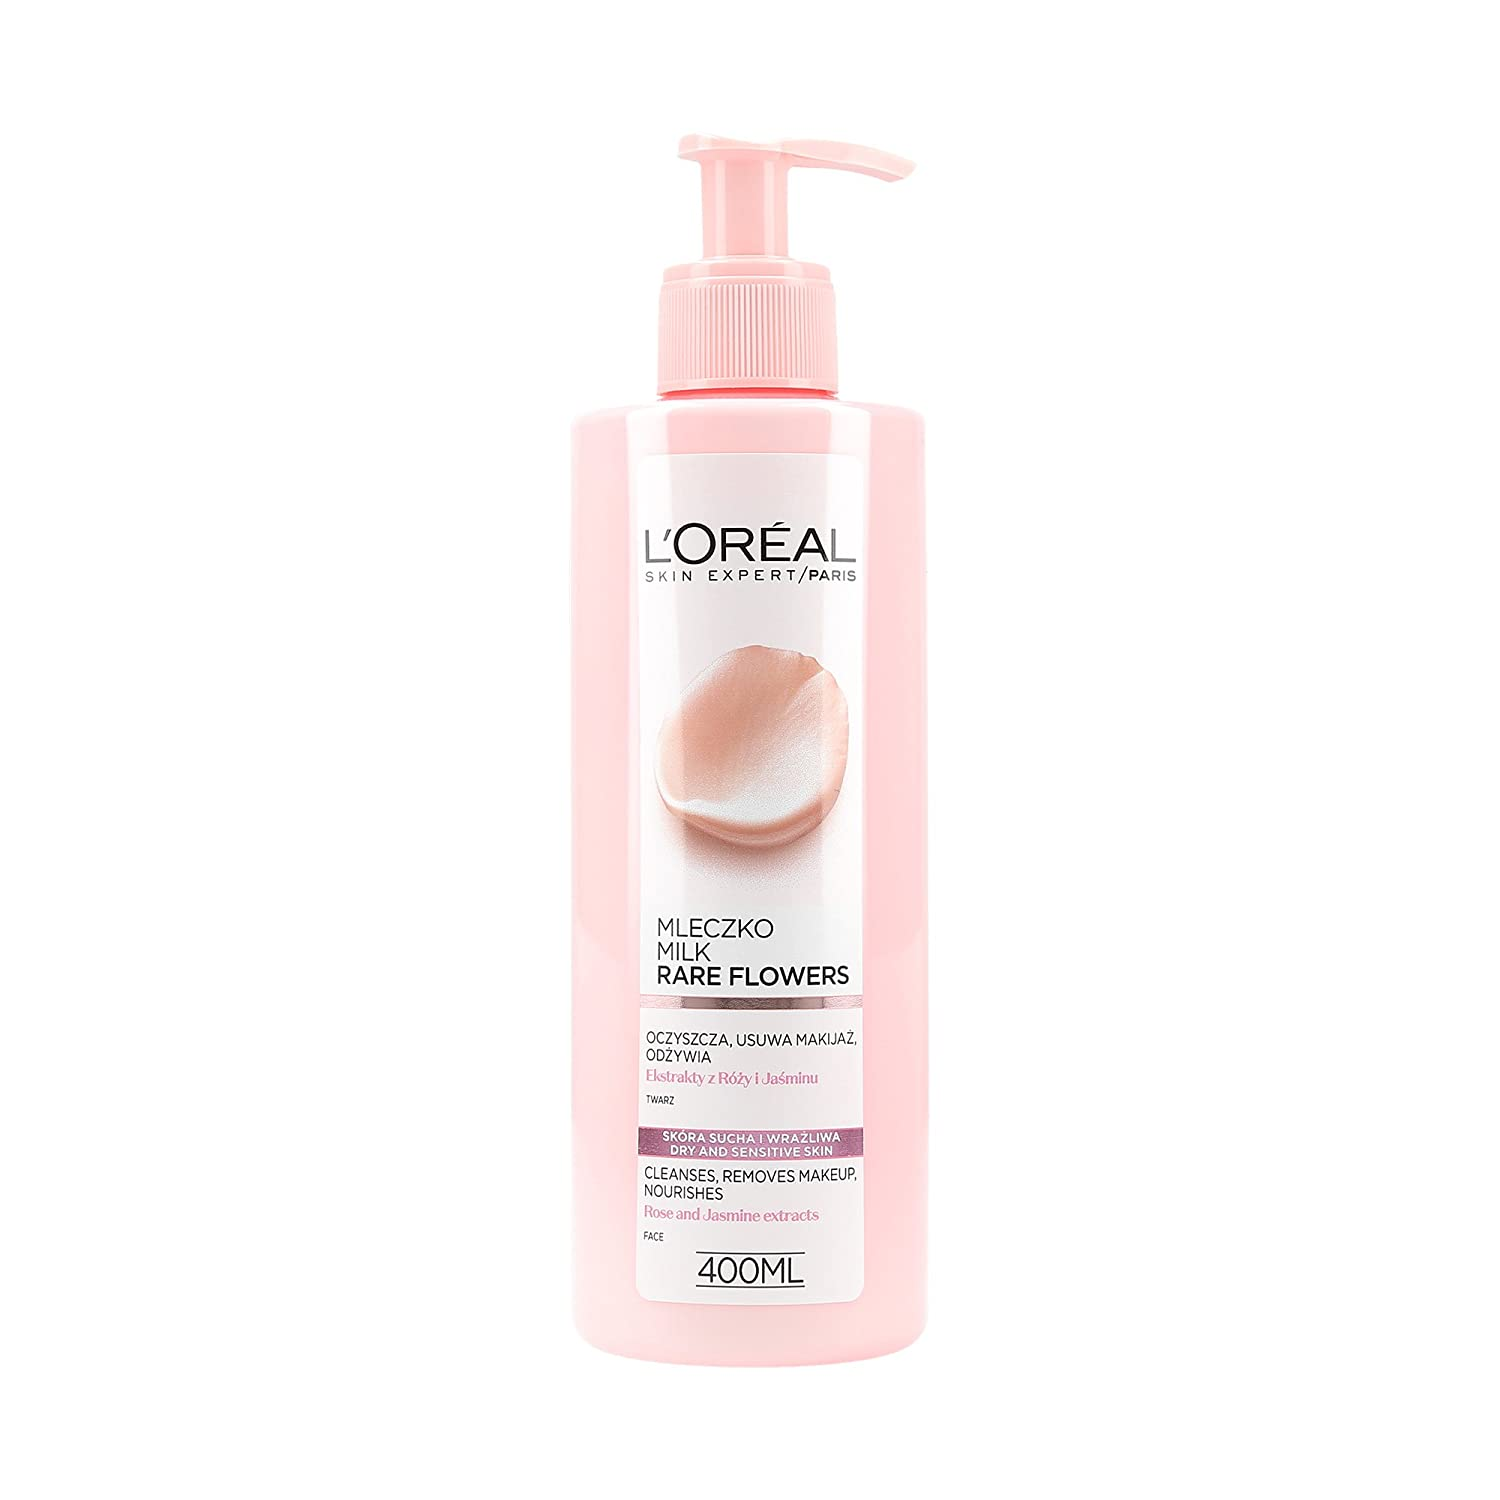 L Oreal Paris flores Rares leche Desmaquillante Piel Seca y Sensible 400 ml: Amazon.es: Belleza